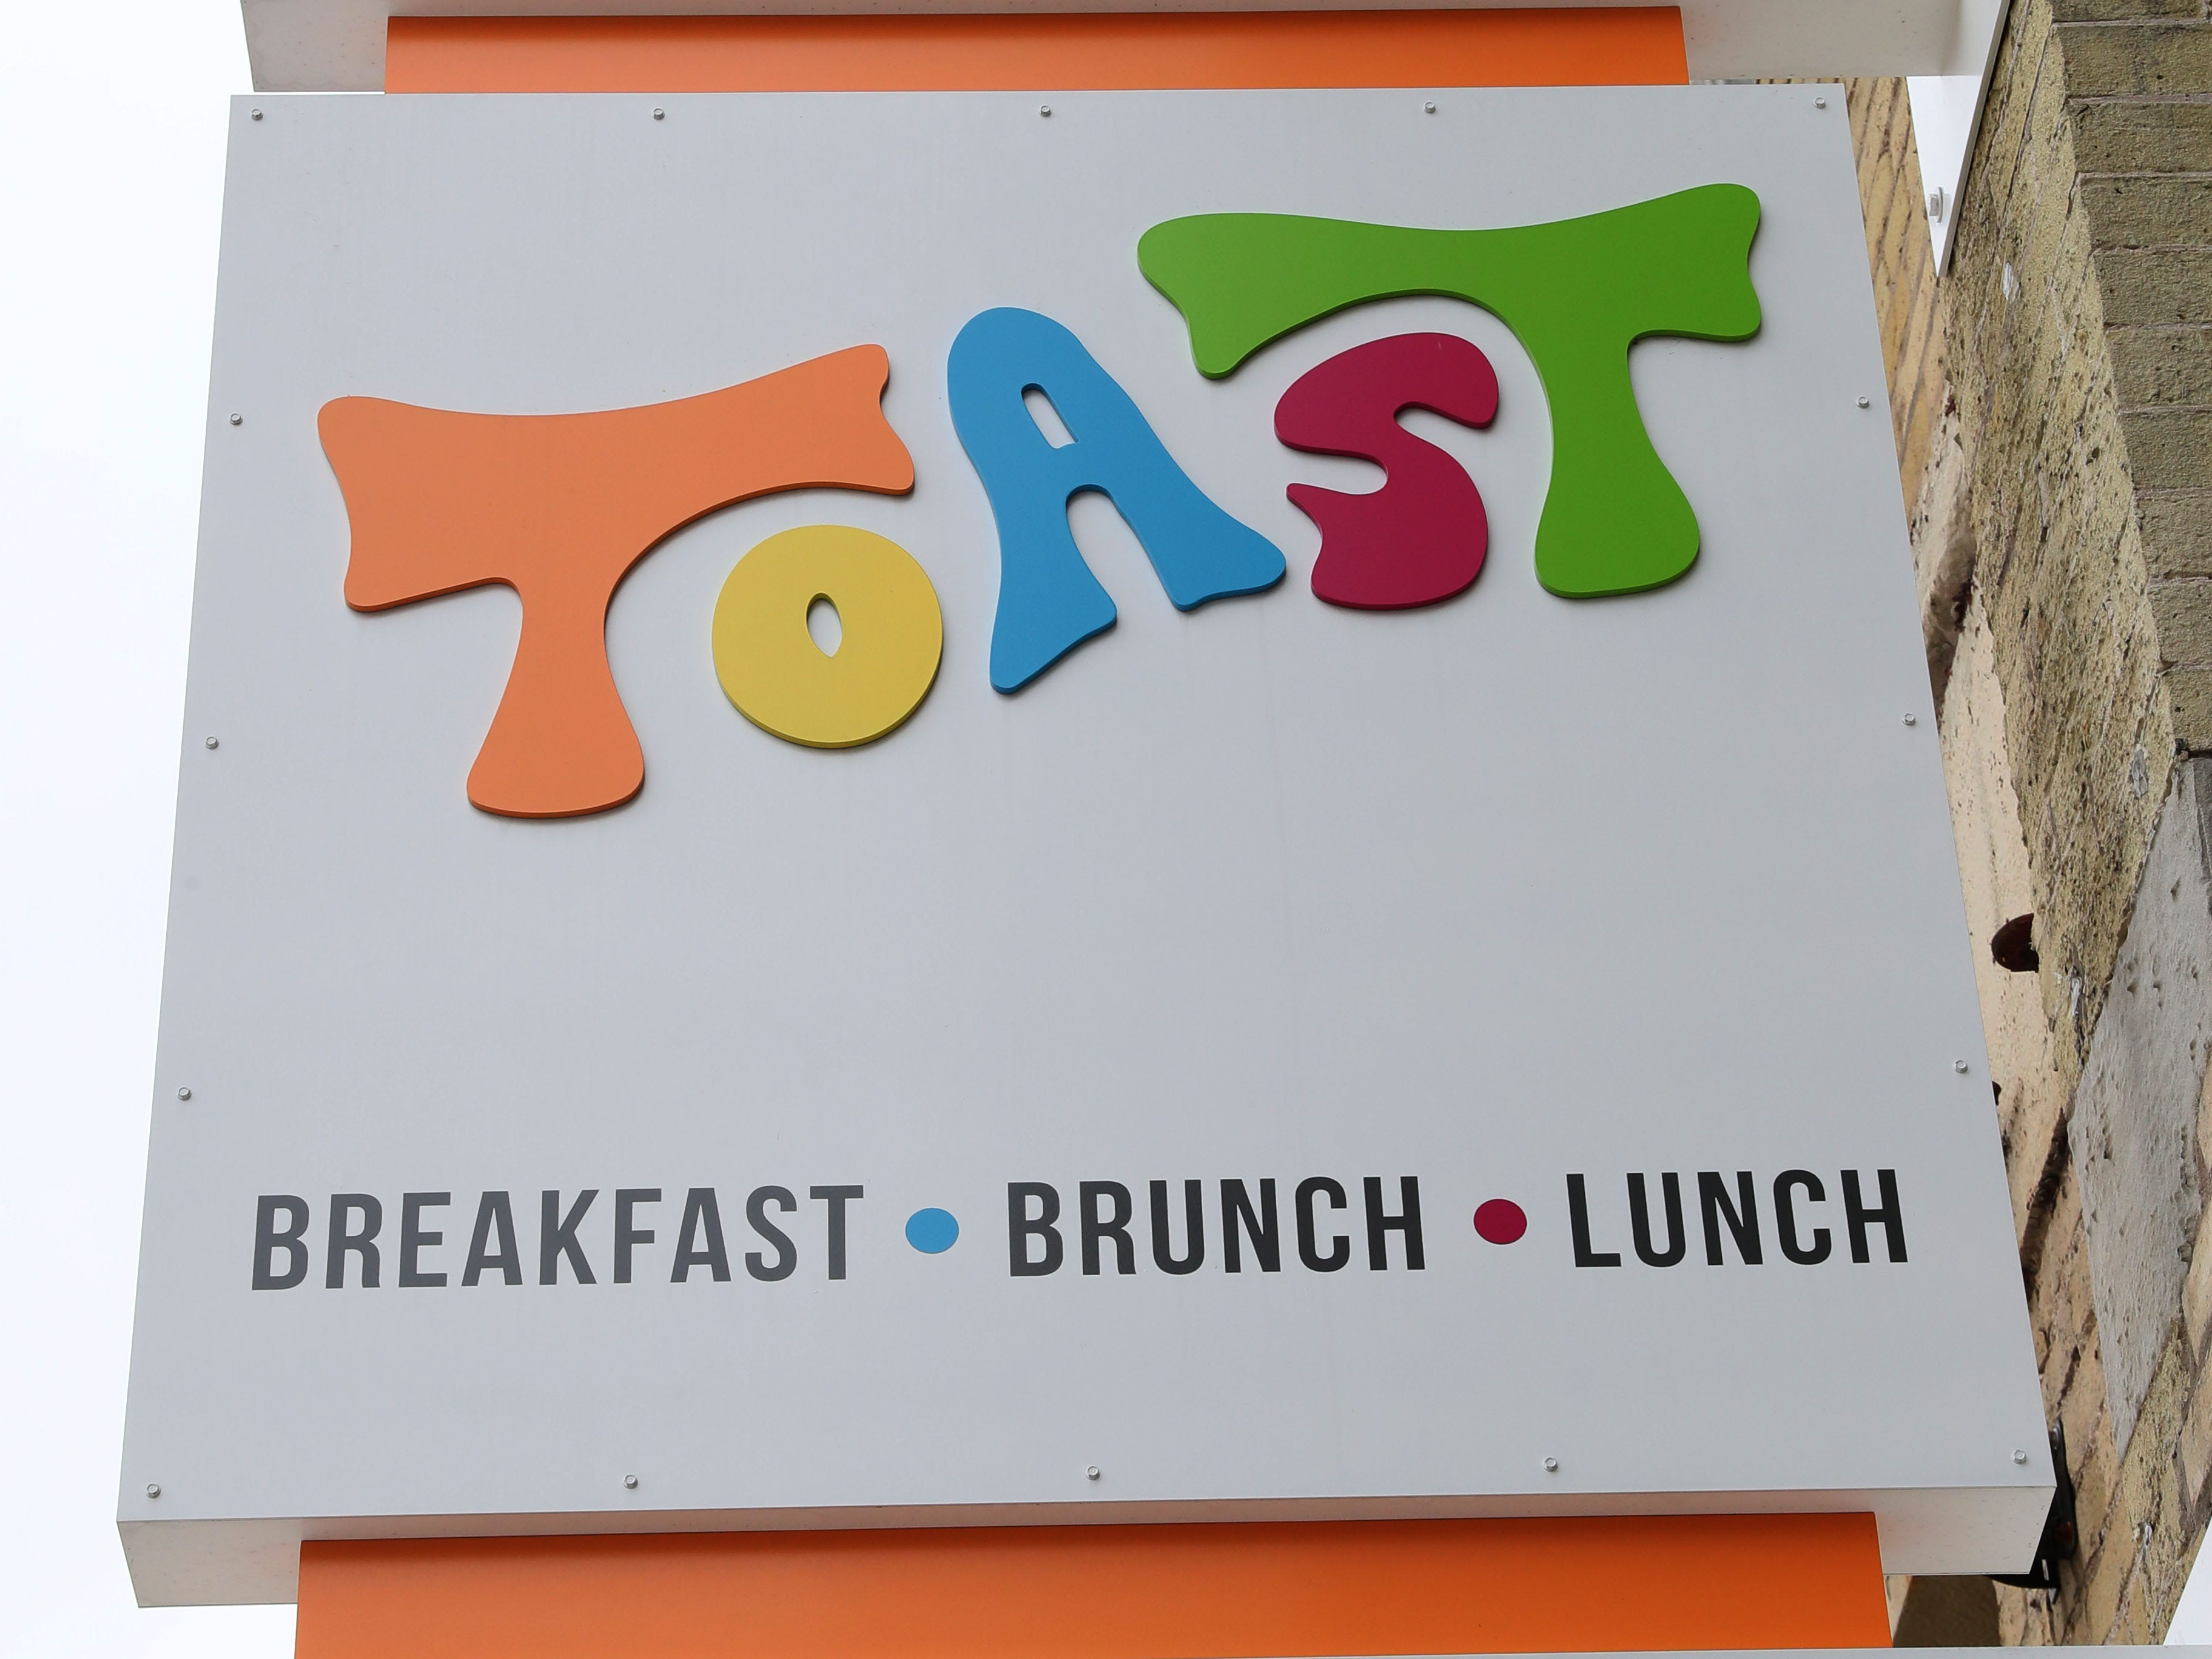 The font and the colors on Toast's sign give away its 1970s theme.